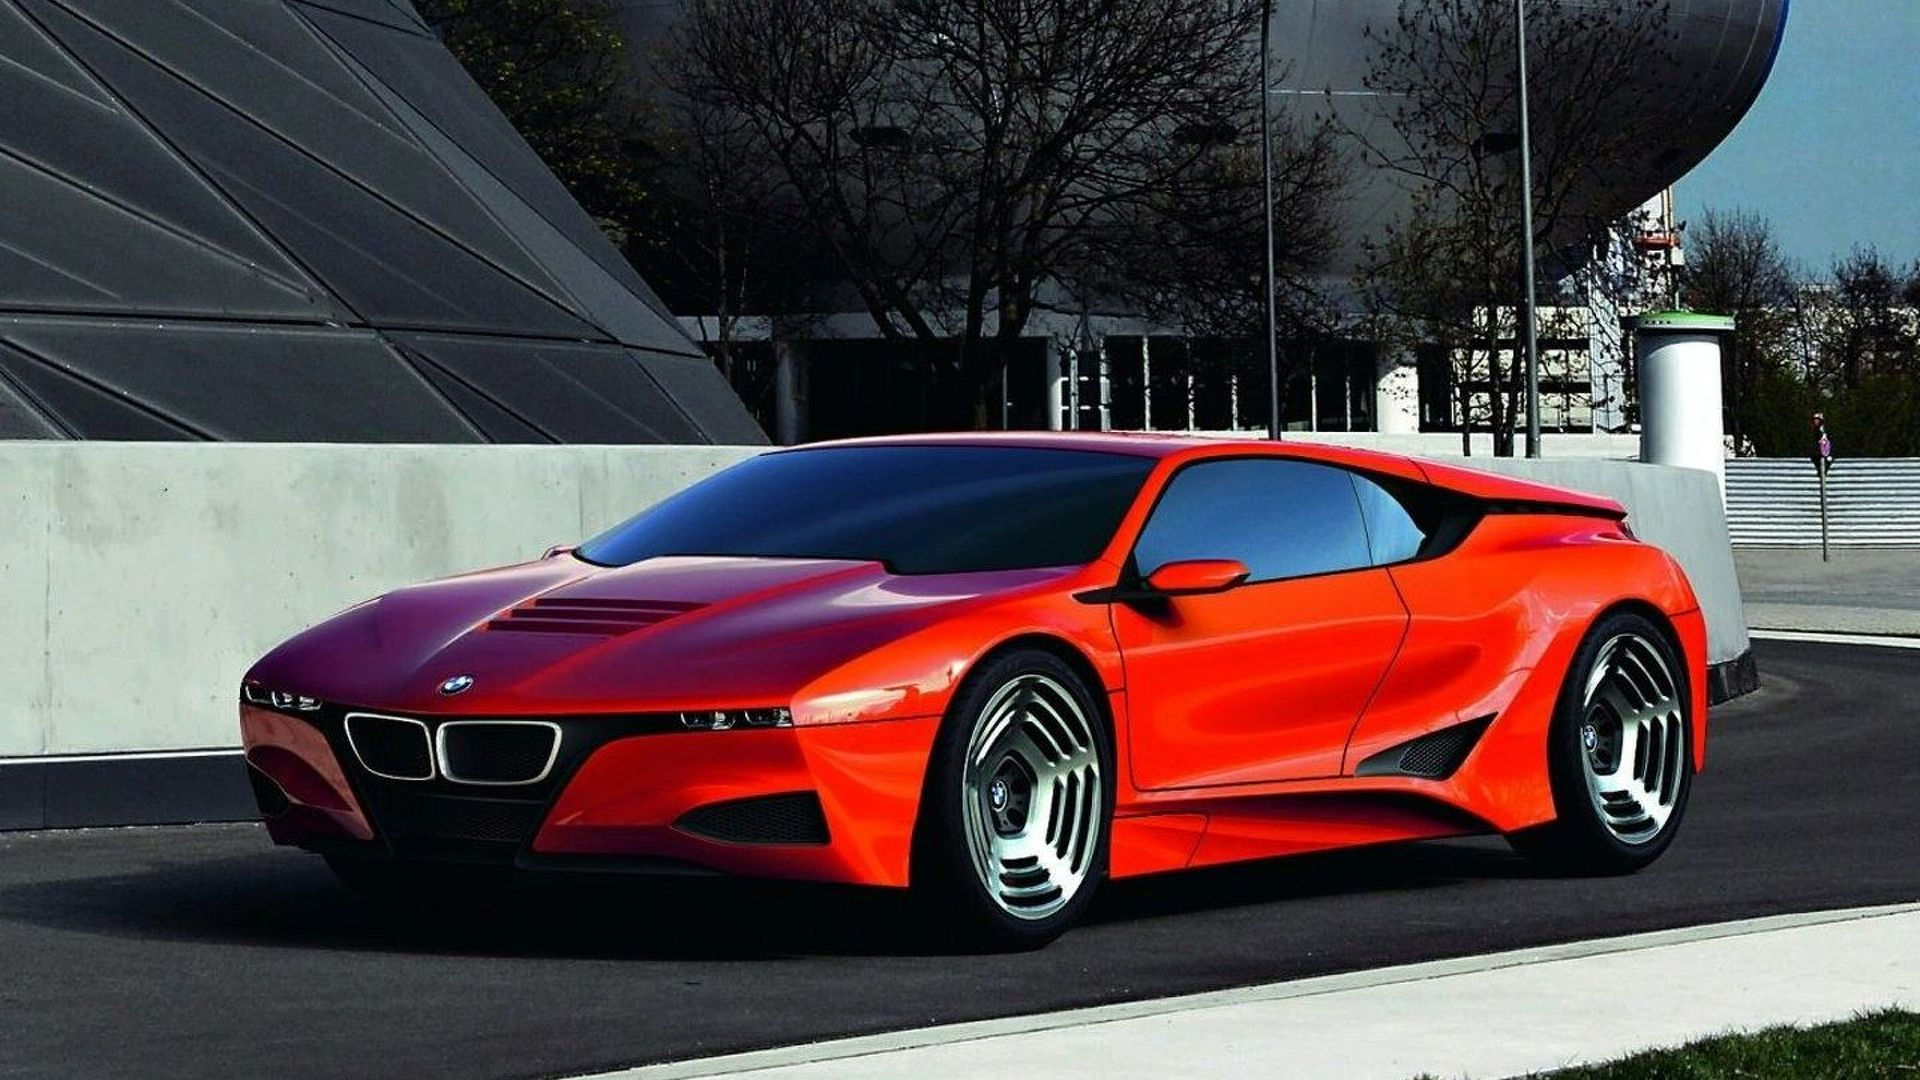 Bmw Reportedly Launching More Potent I9 In 2016 To Celebrate Centenary